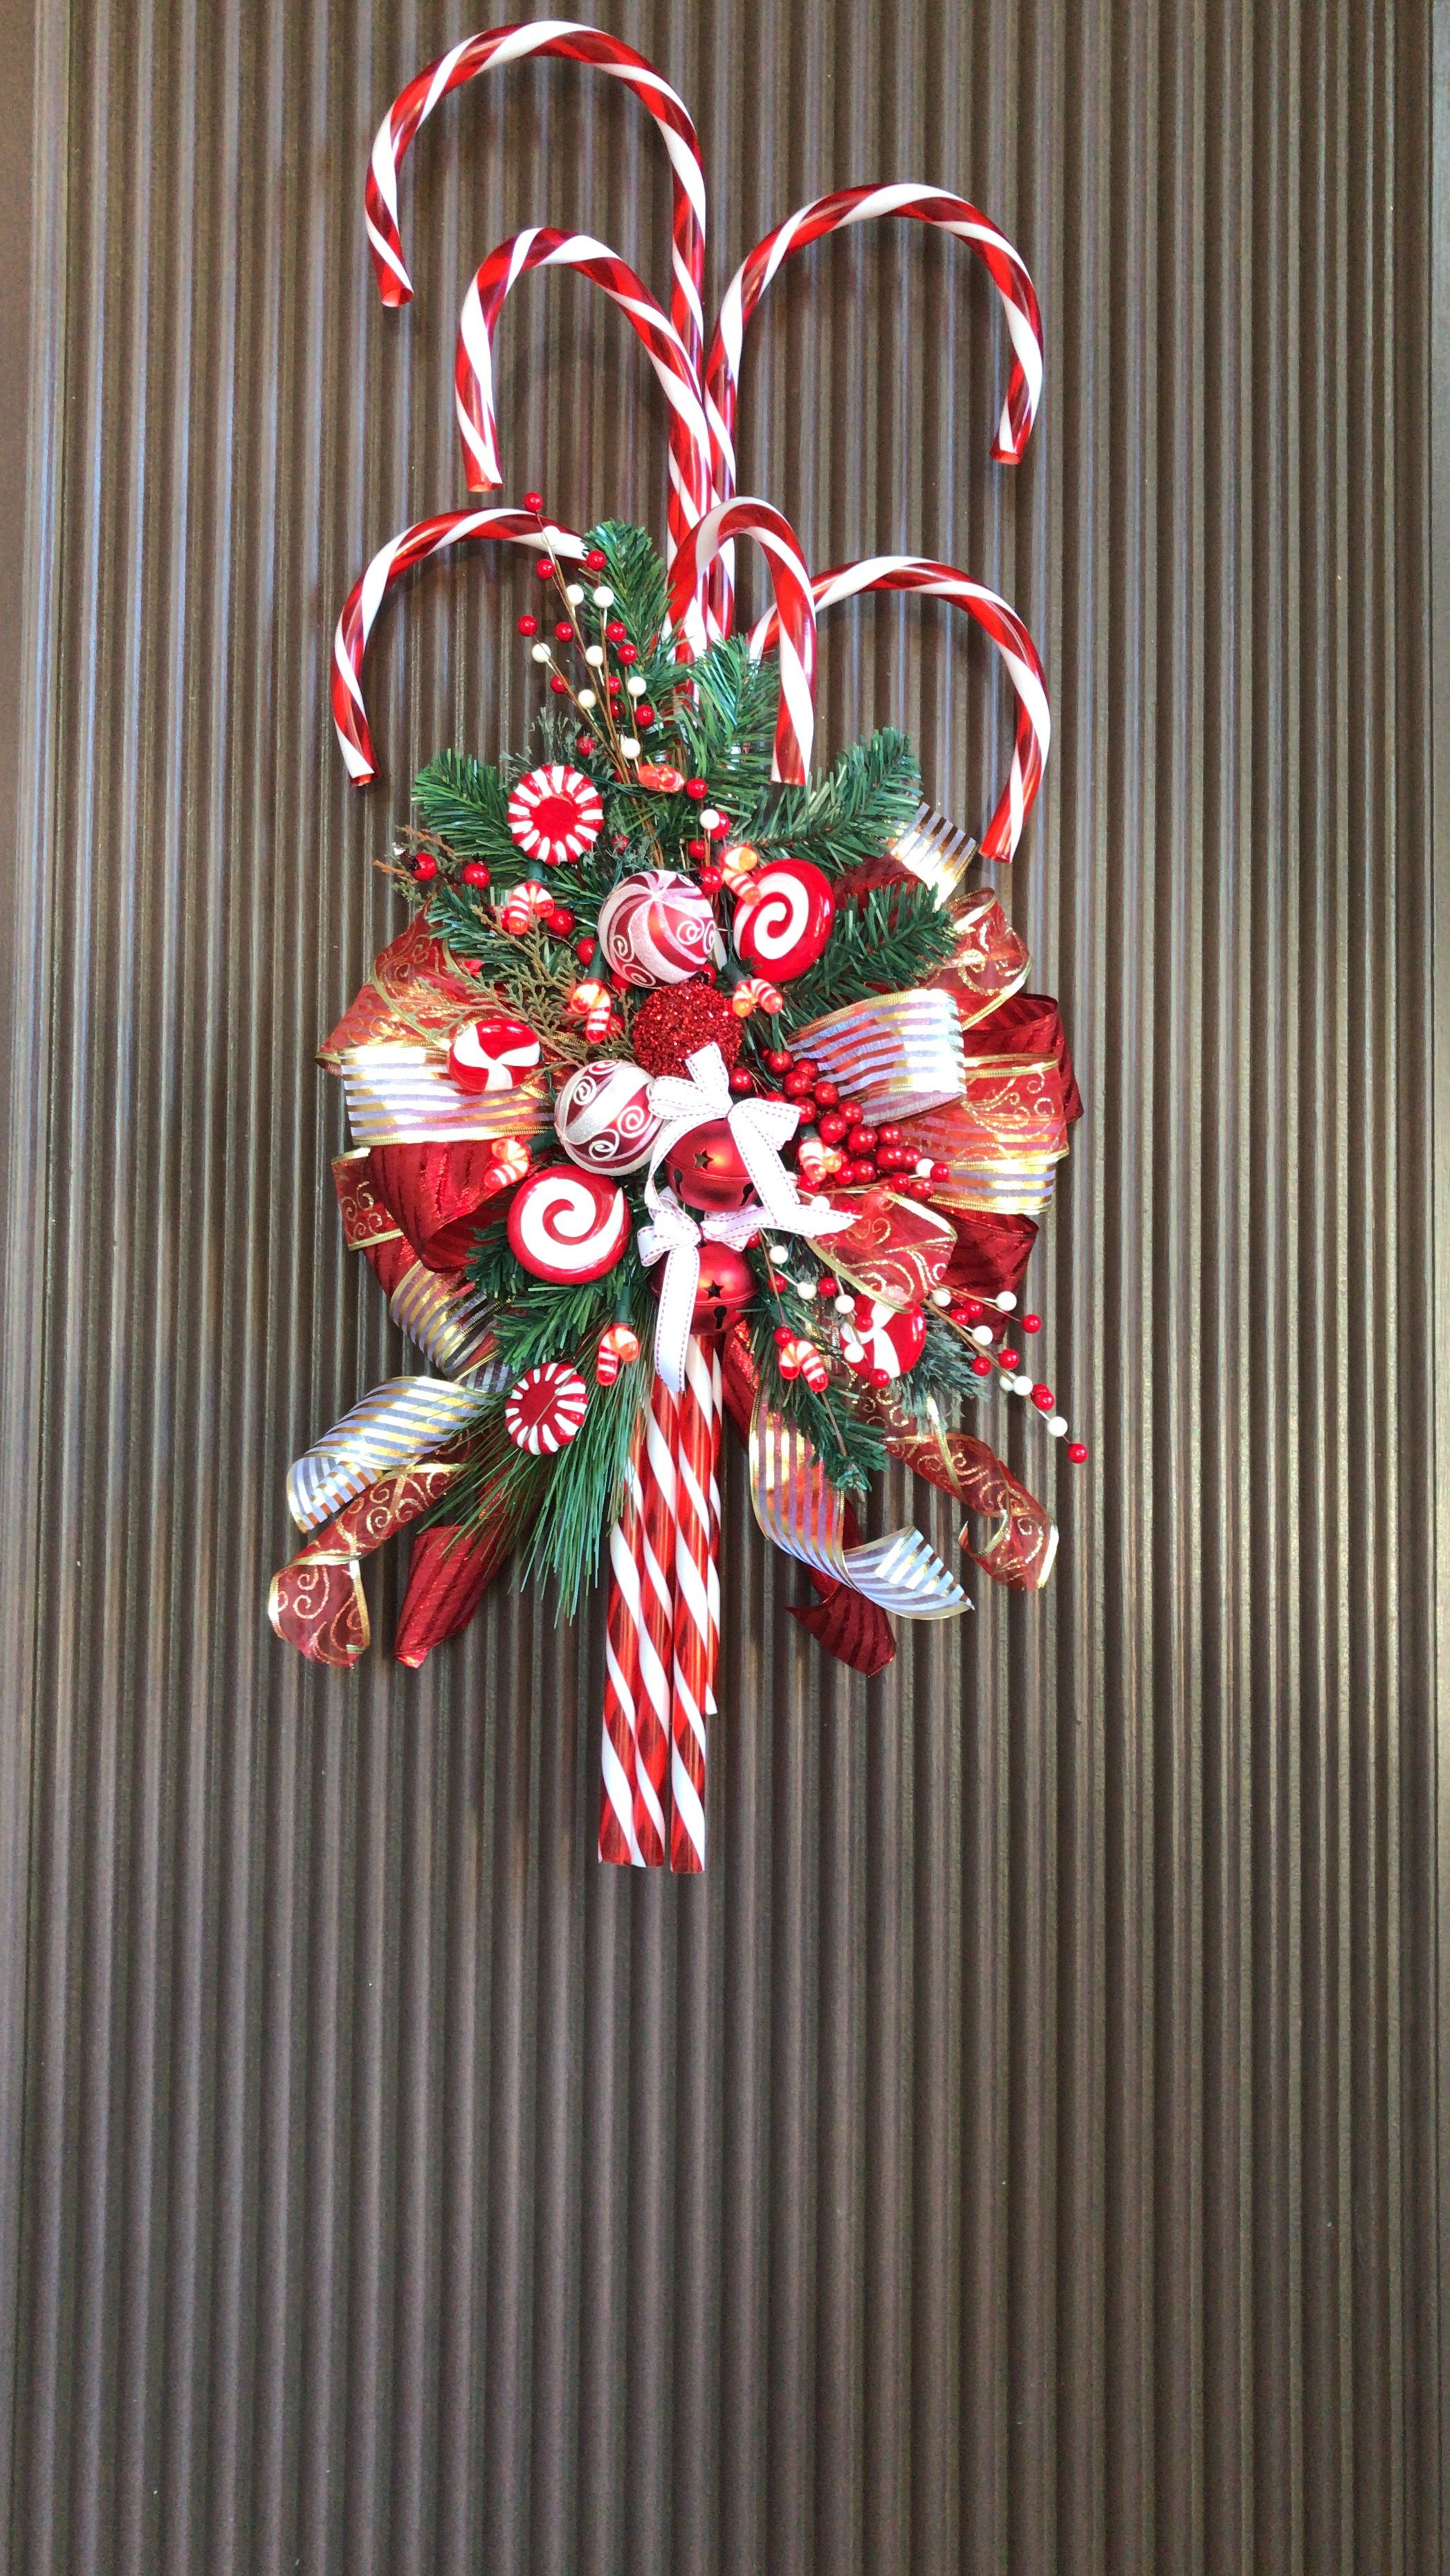 My Inspired Candy Cane Door Garland Love It Christmas Diy Christmas Crafts Diy Christmas Door Decorations